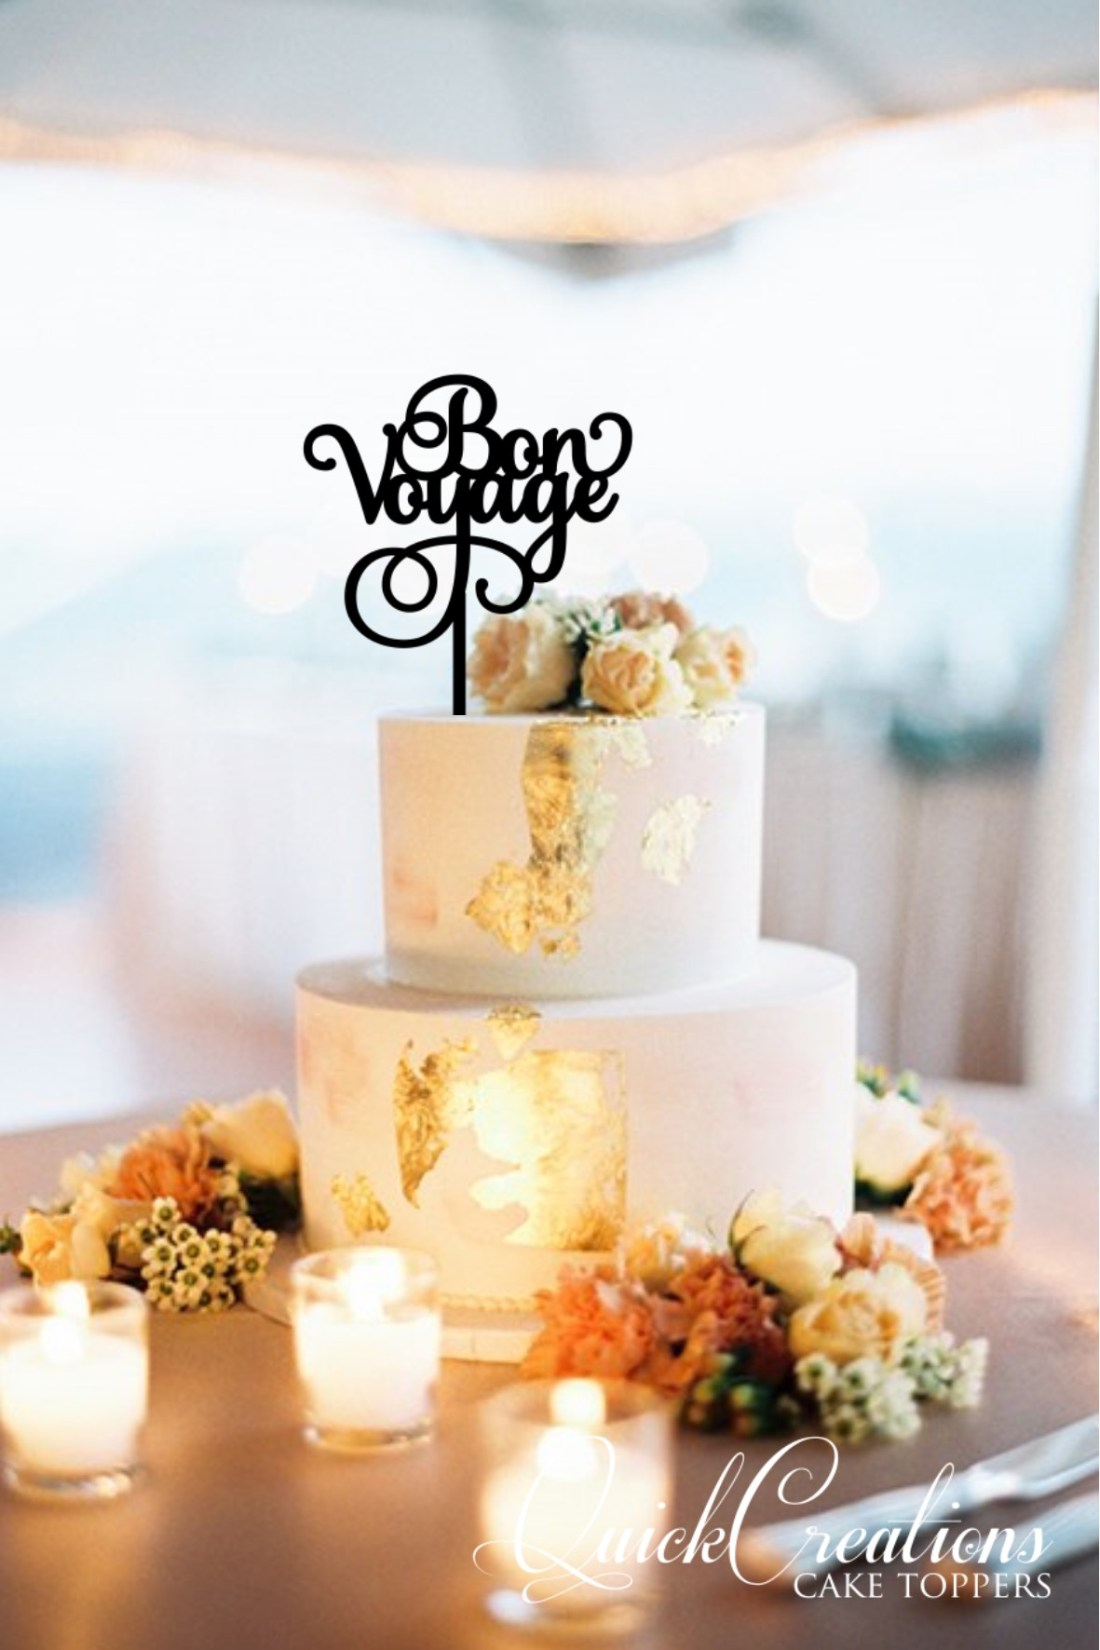 Quick Creations Cake Topper- Bon Voyage